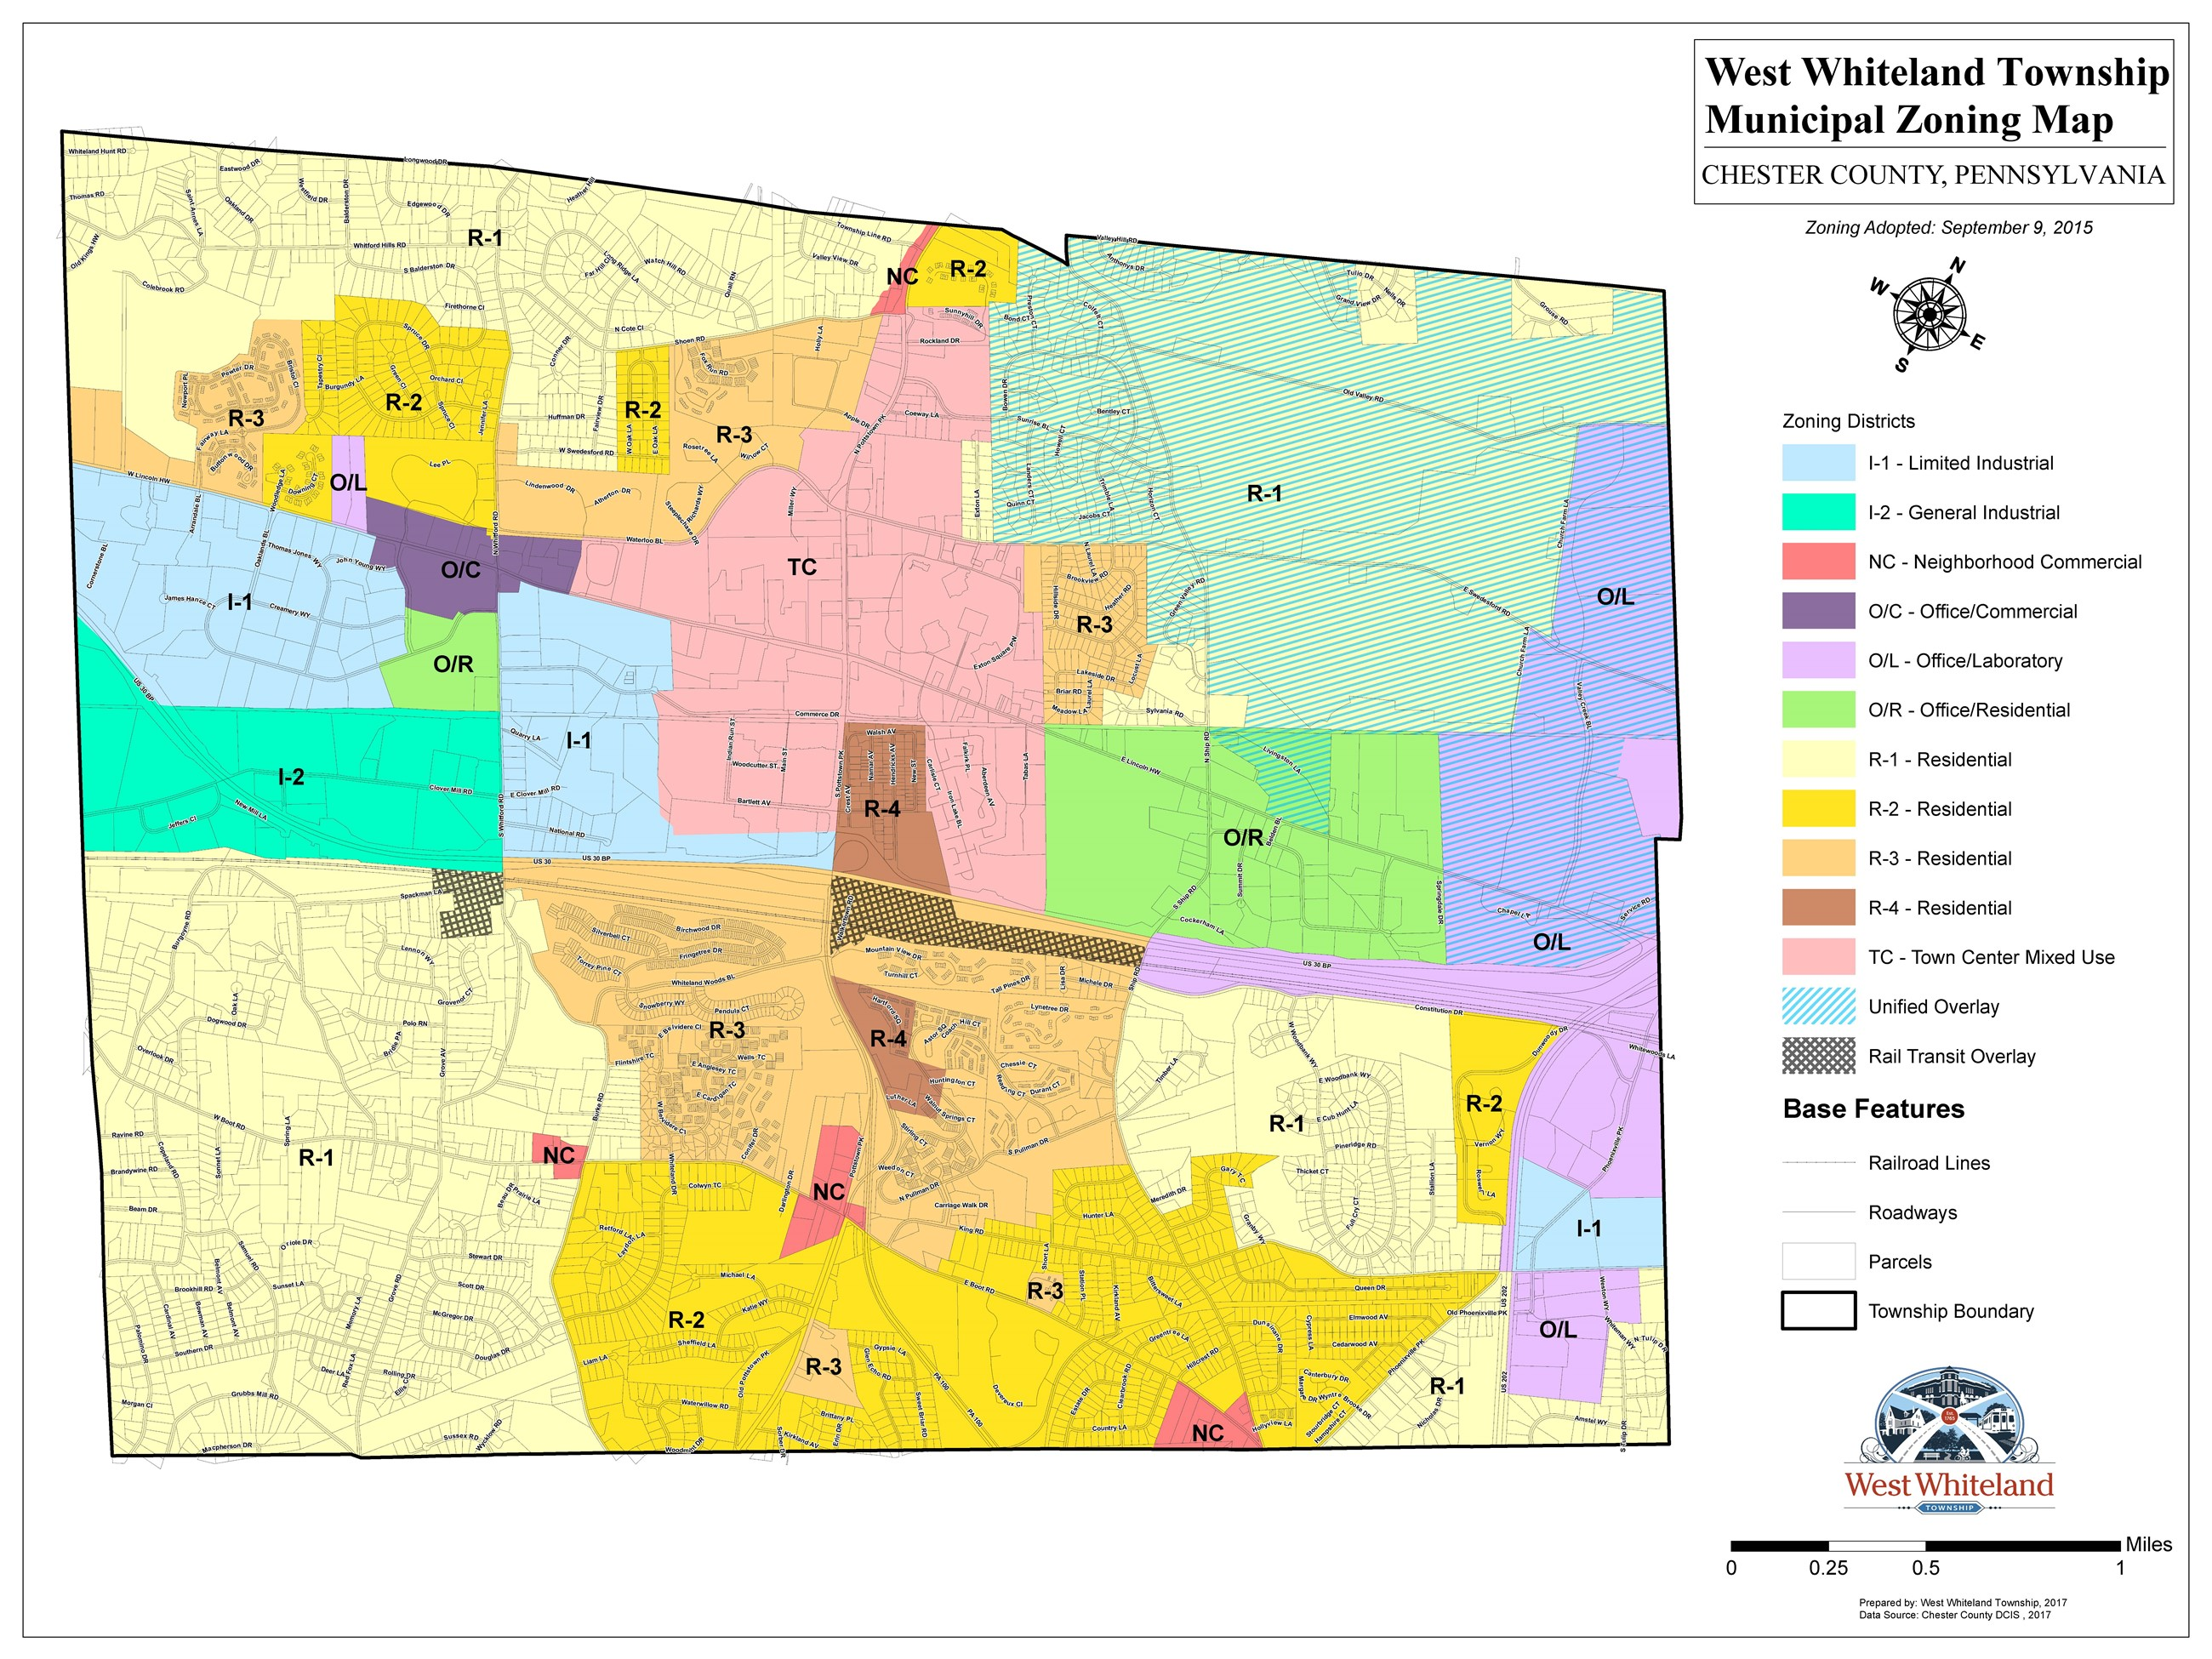 Zoning Map Adopted